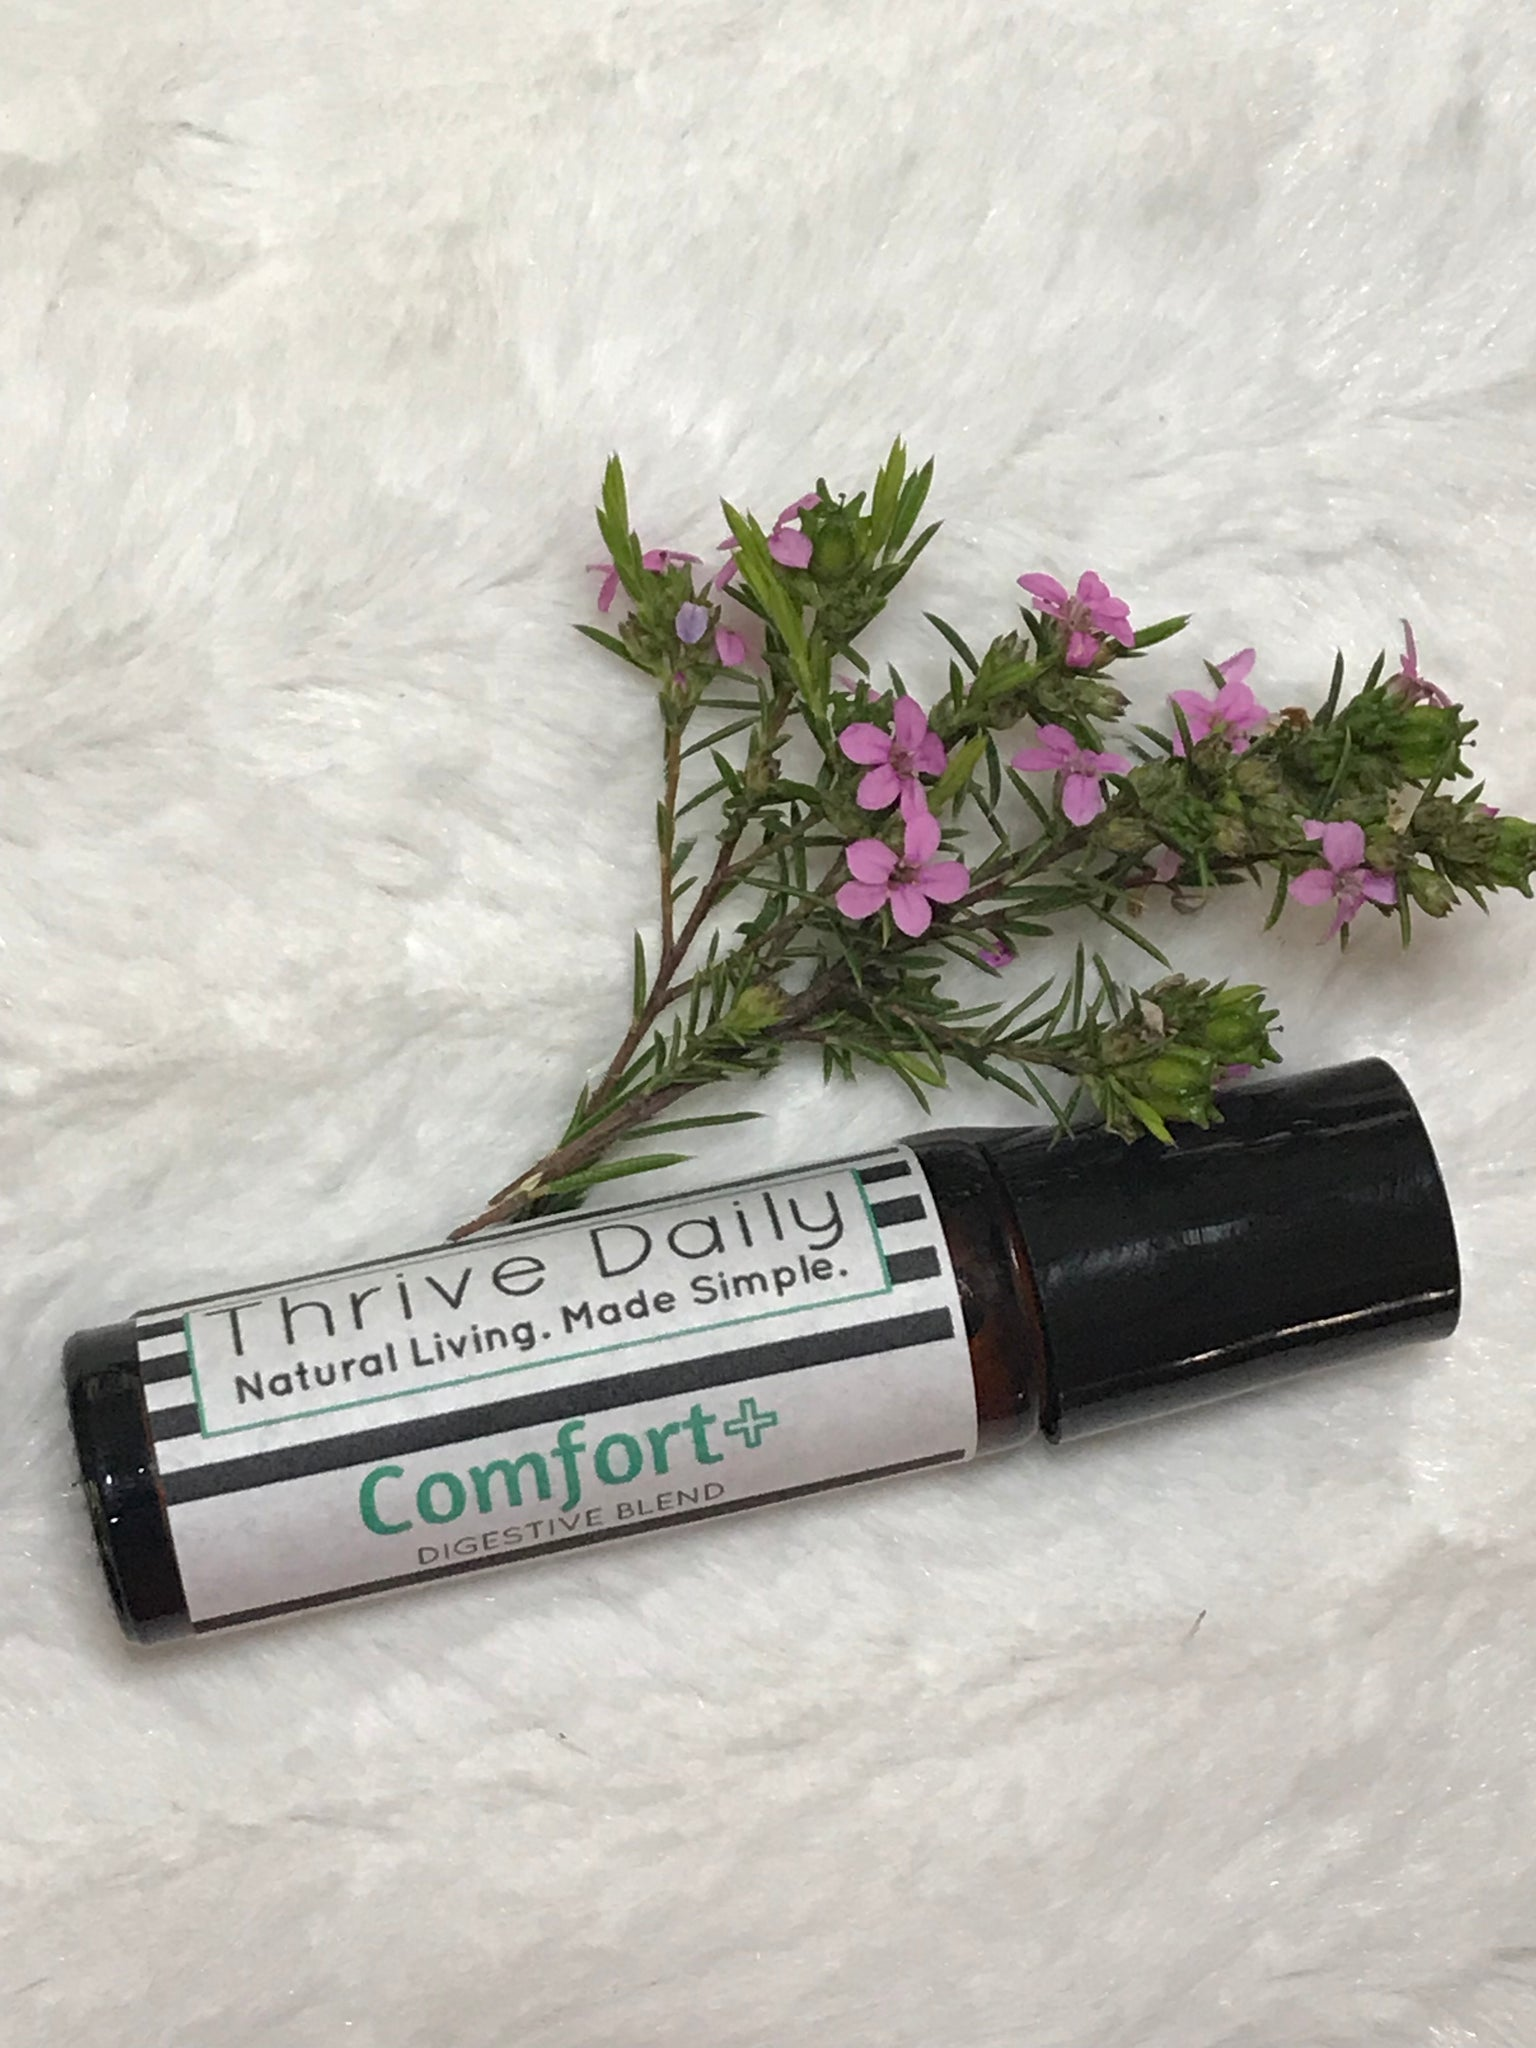 Comfort PLUS Roller Bottle (DIGESTIVE BLEND)